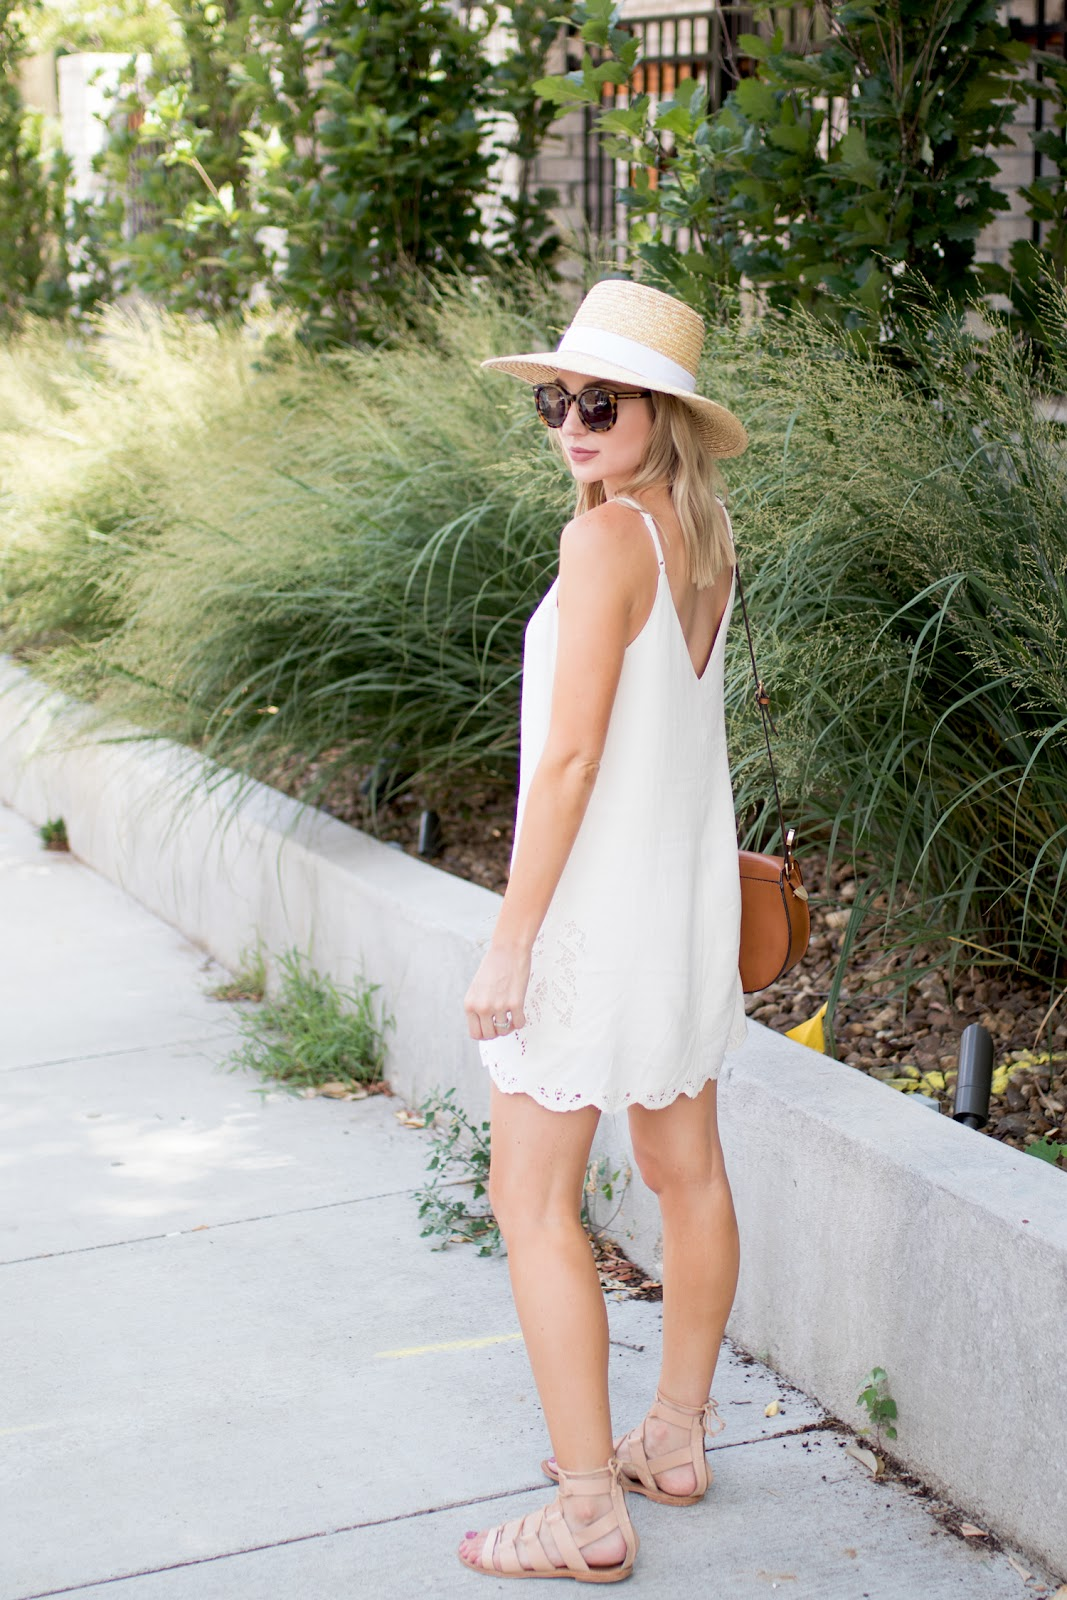 White dress with eyelet details